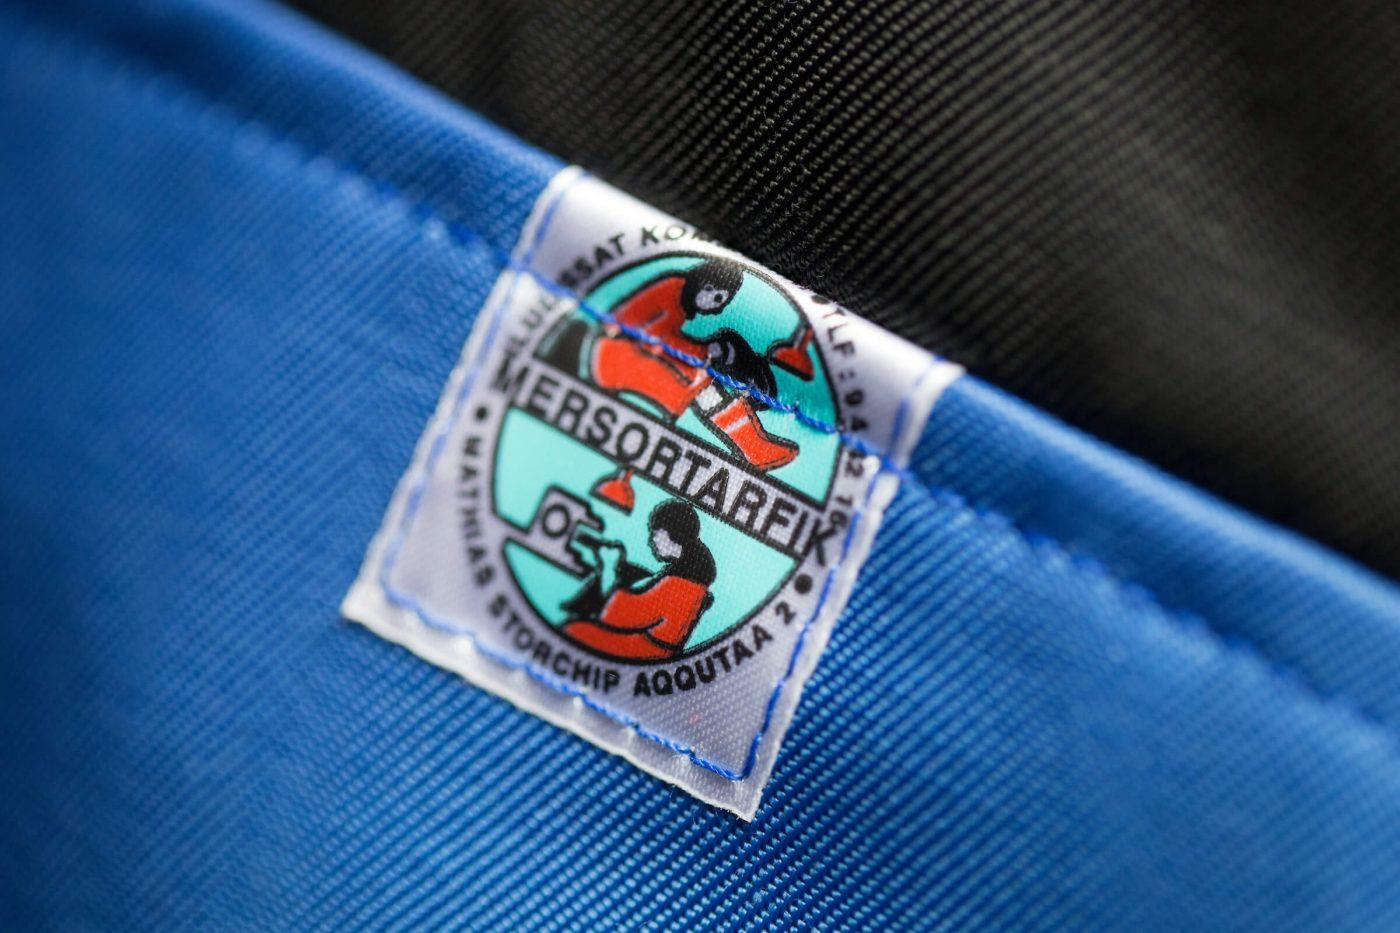 The Mersortarfik sewing workshop logo on one of their blue anoraks in Ilulissat, Greenland. Photo by Mads Pihl